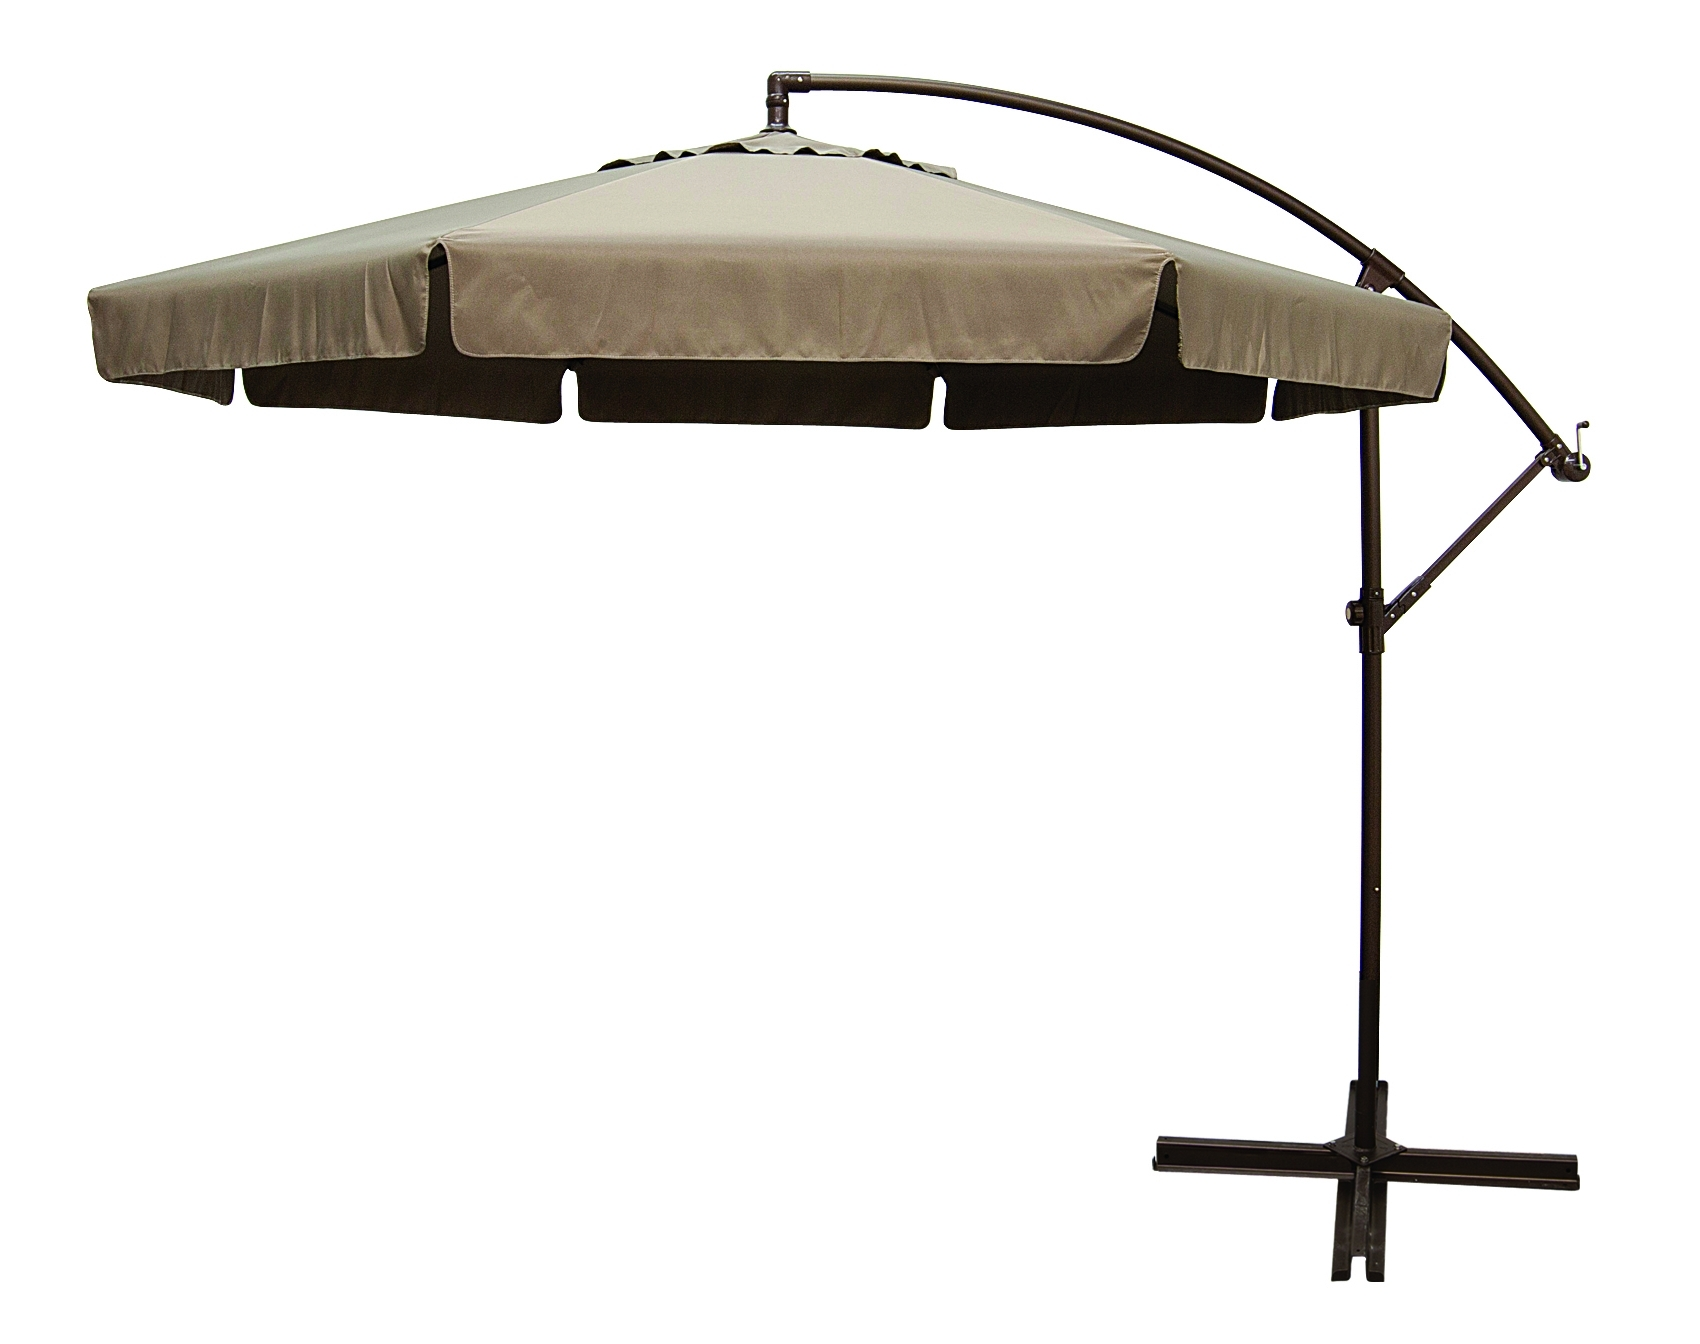 Large Patio Umbrellas Within Recent Large Patio Umbrellas Furniture — Wilson Home Ideas : Stylish Large (View 10 of 20)